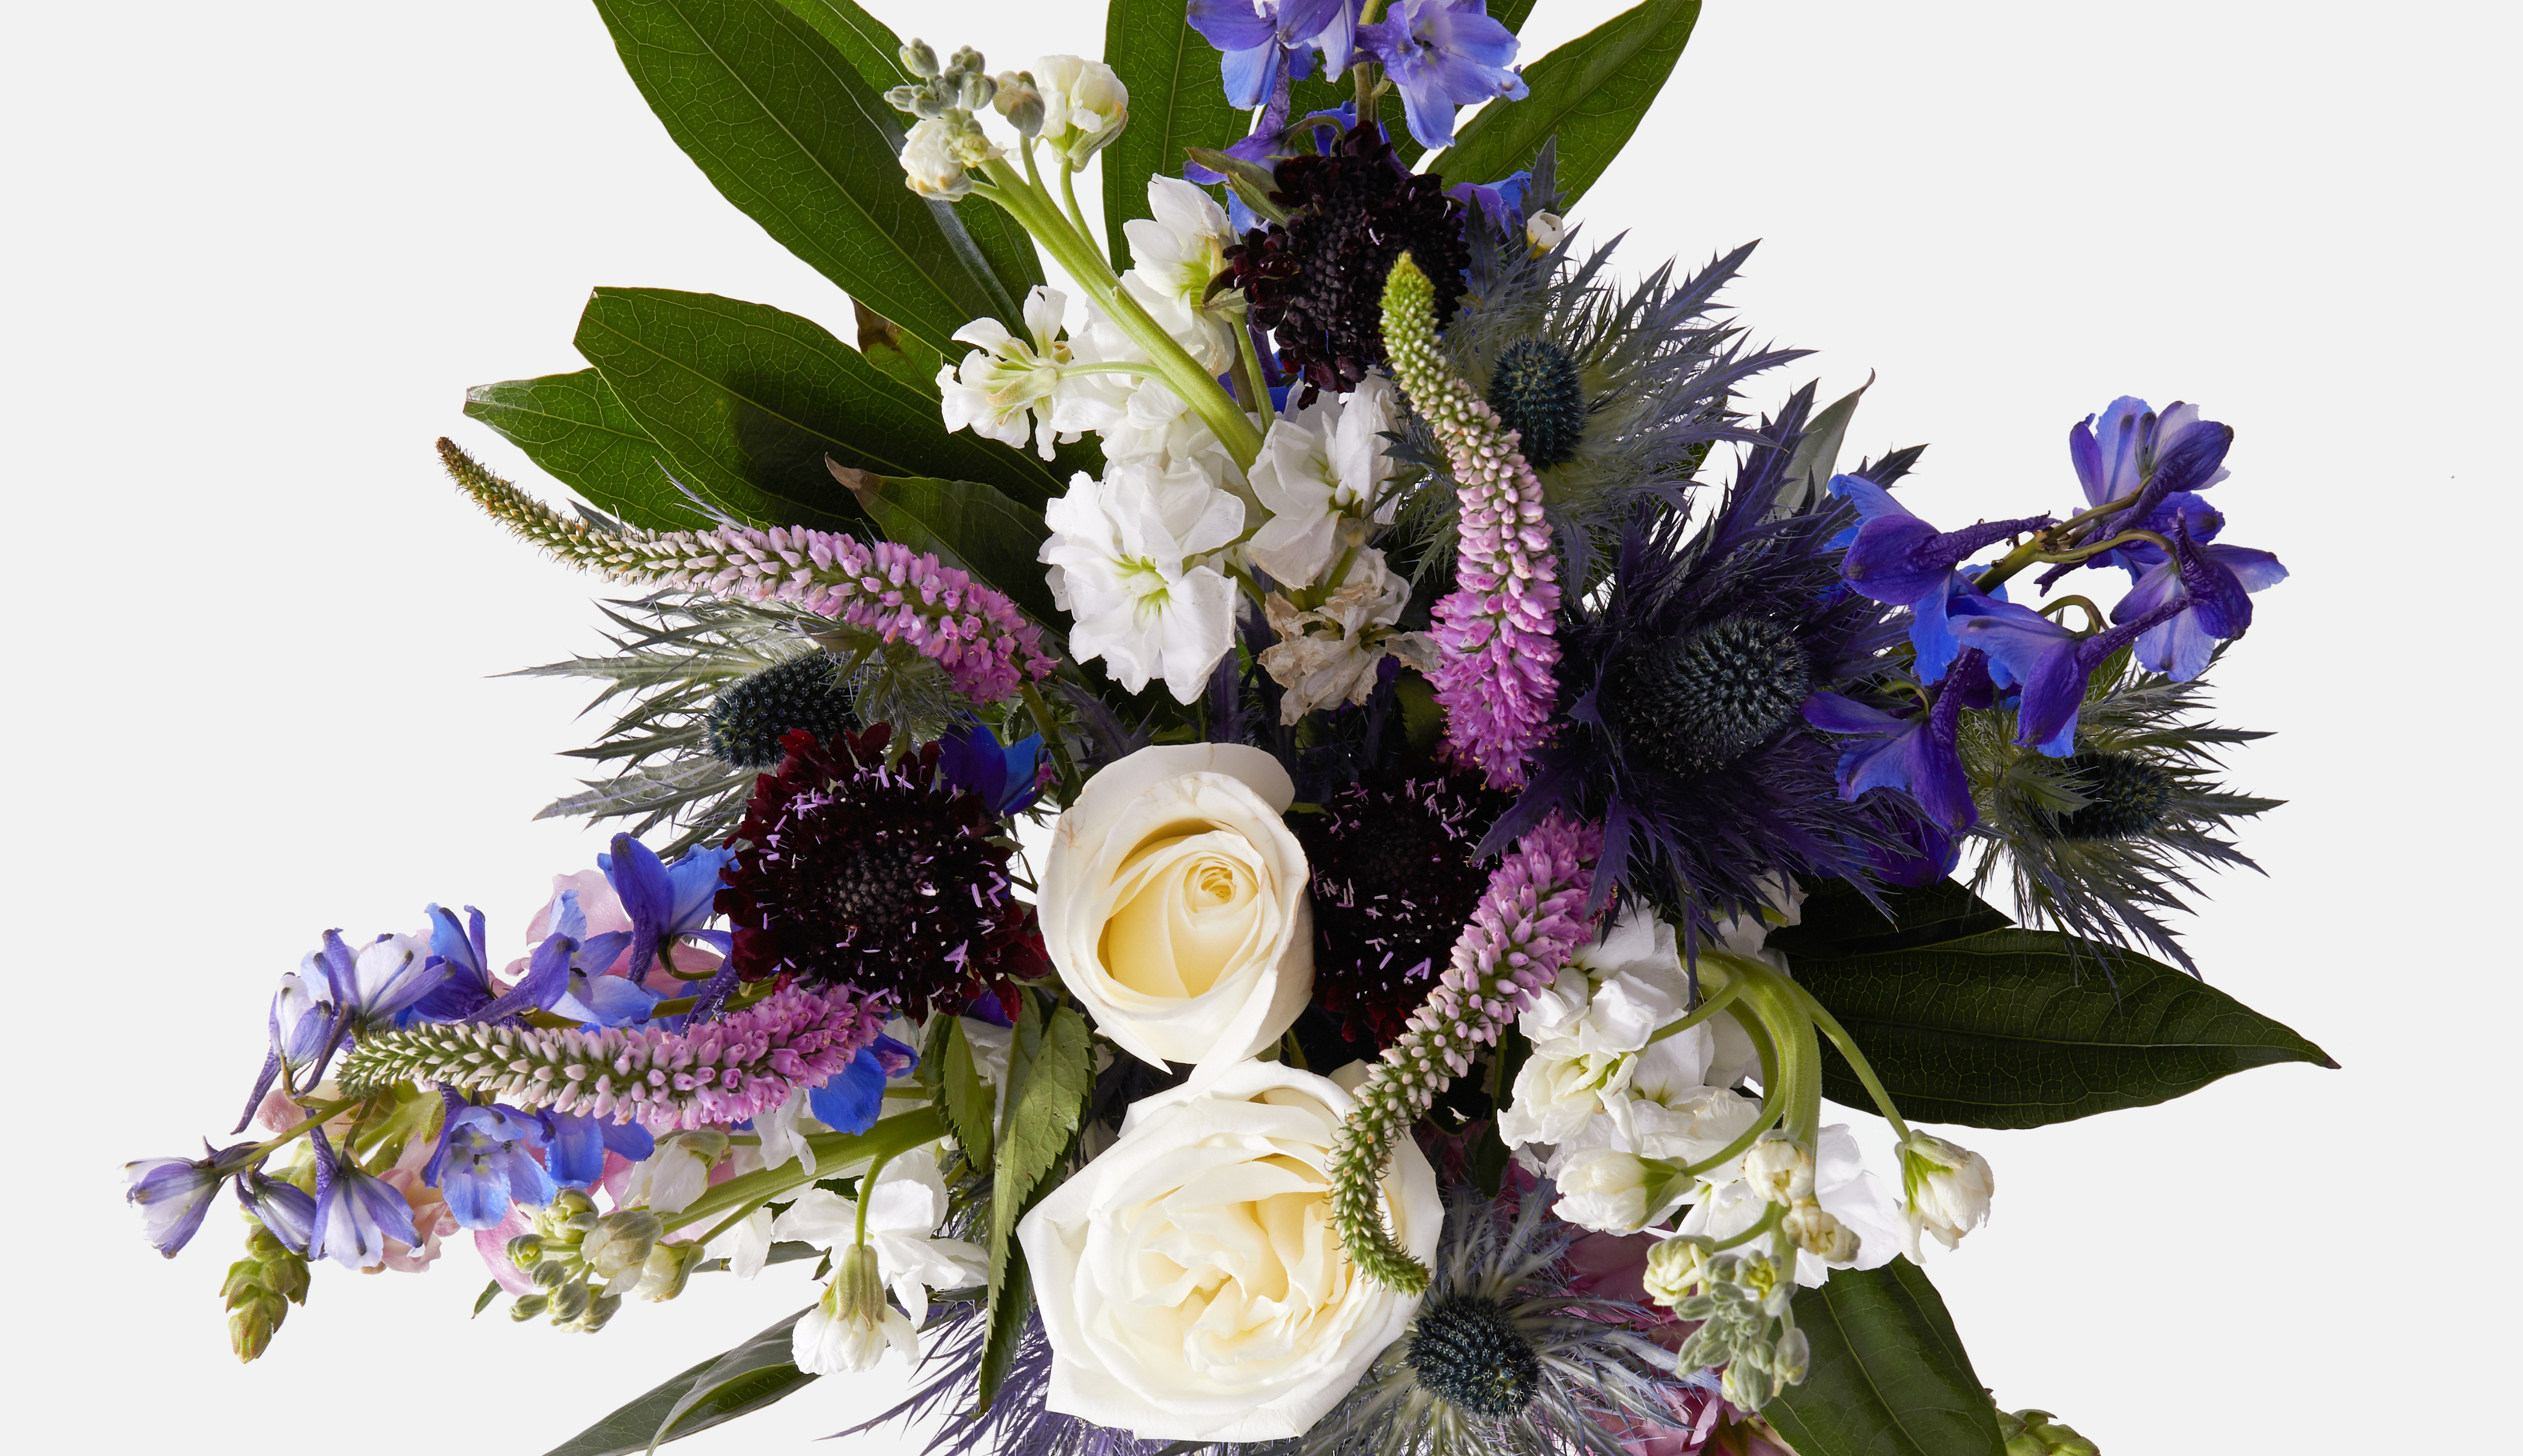 Flower bouquet of white roses and other purple and blue flowers.